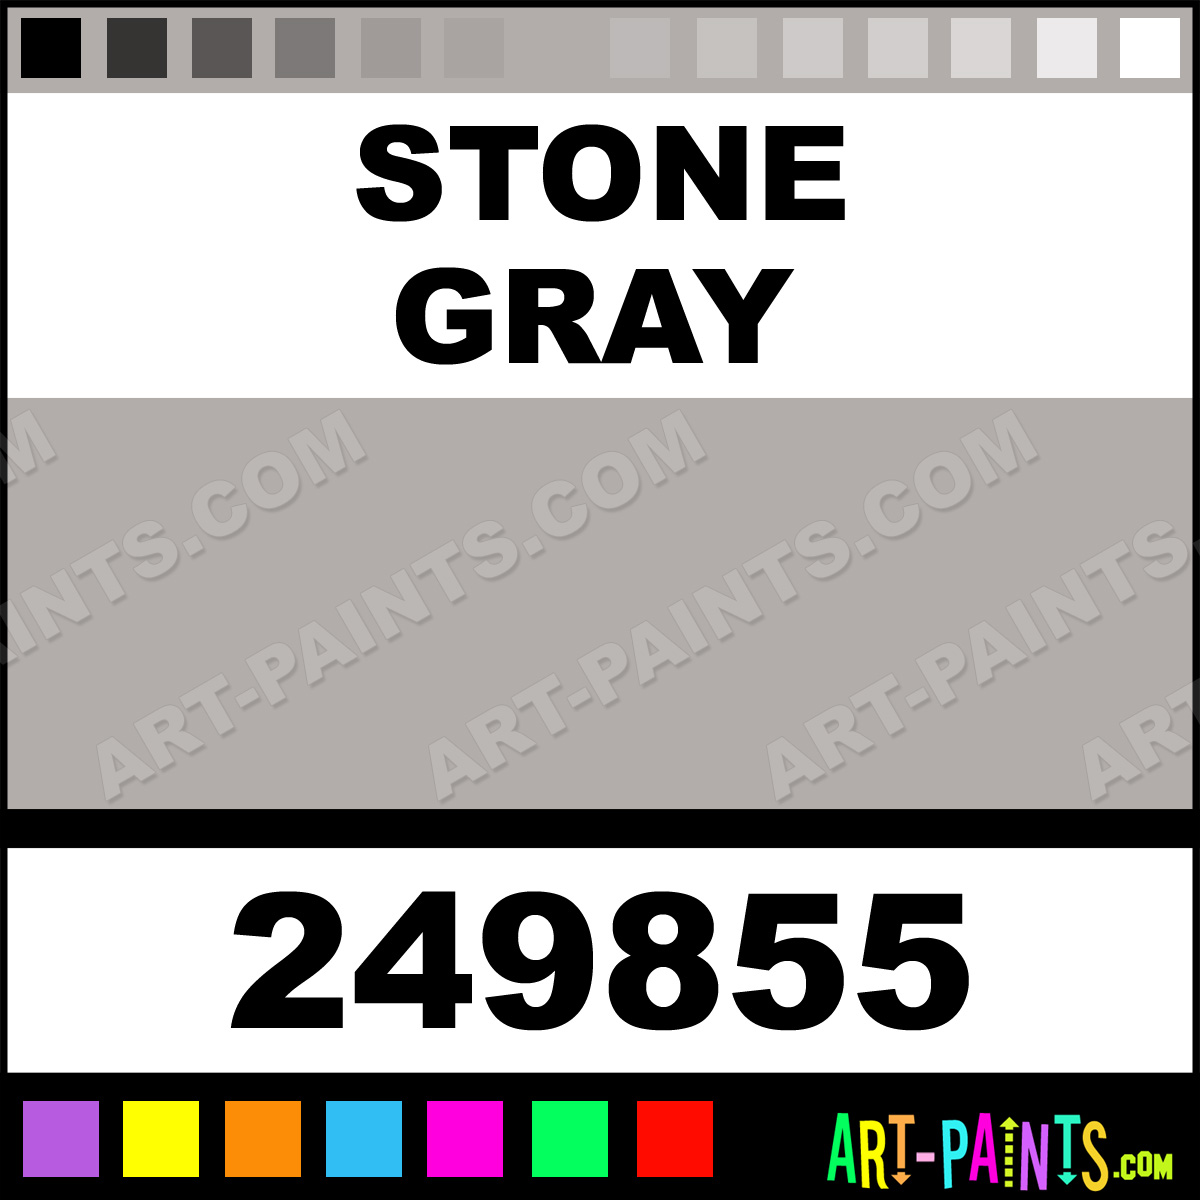 Stone gray satin ceramic paints 249855 stone gray for Gray stone paint color